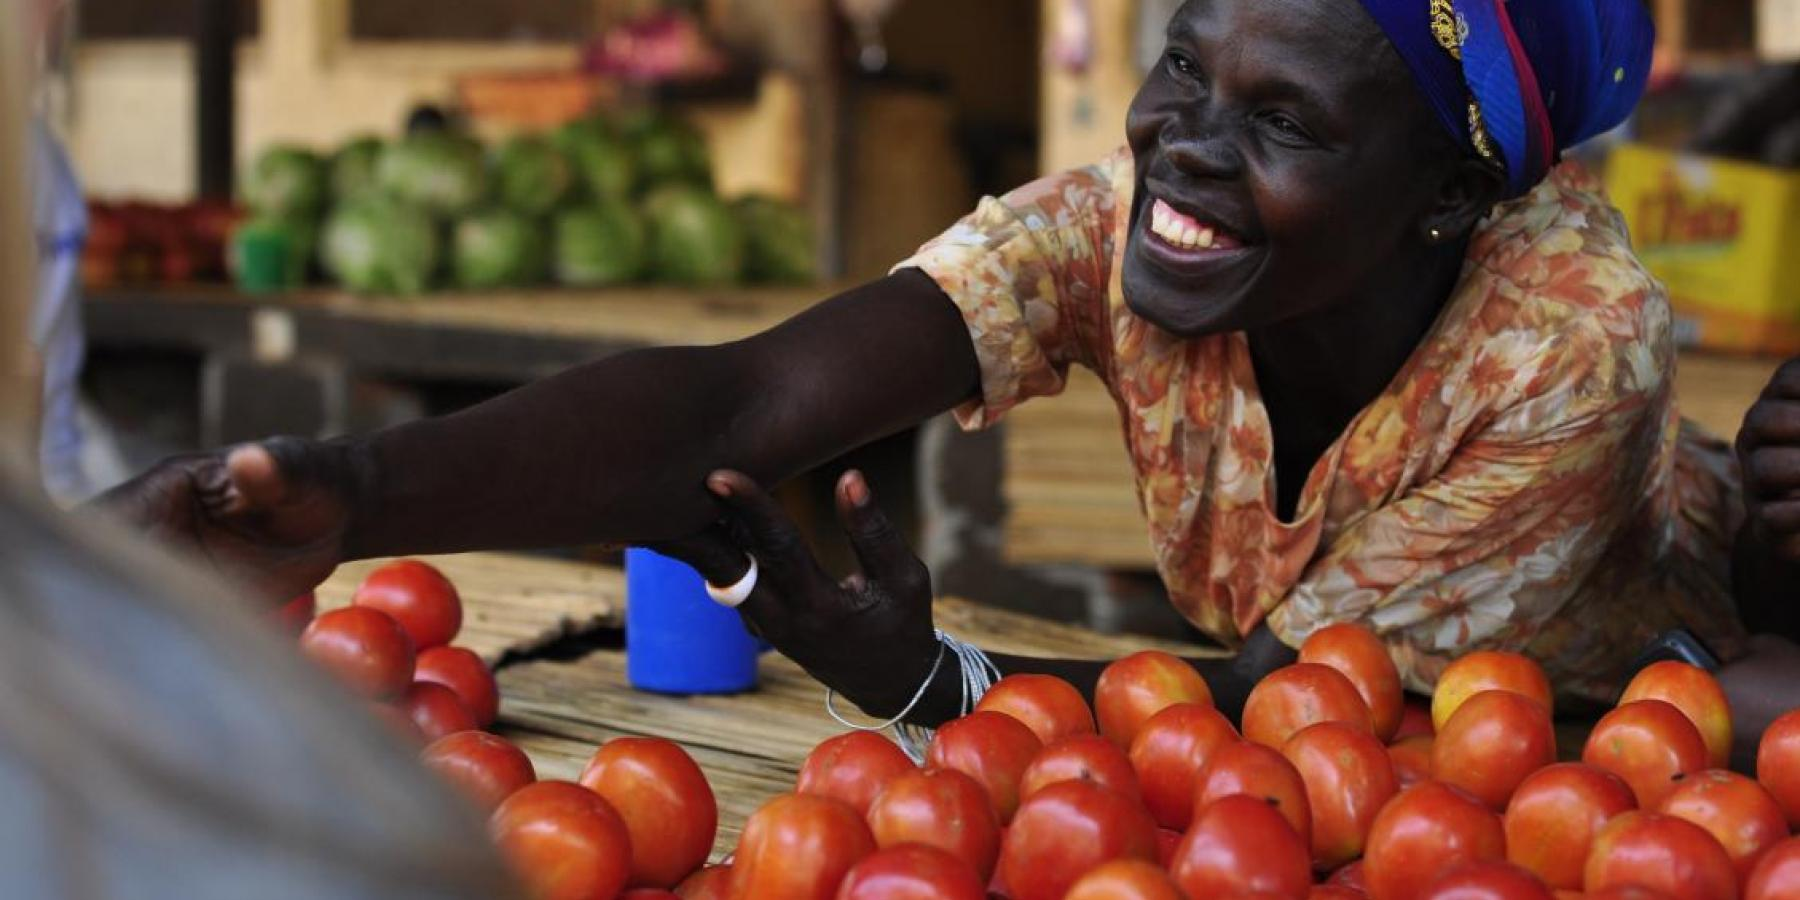 A member of a women's microfinance group sells produce at a market in Gulu, Uganda.